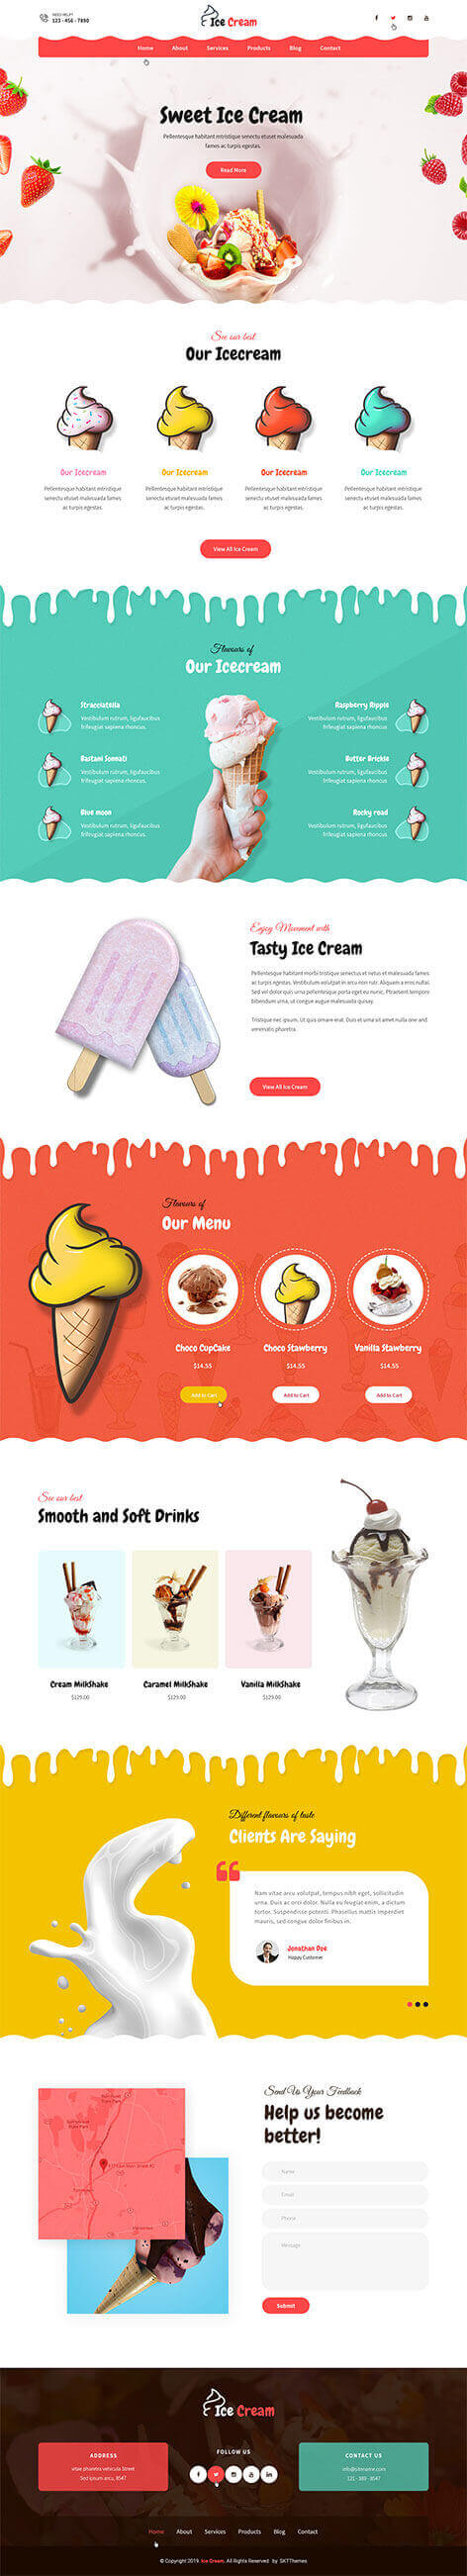 Ice Cream Parlor WordPress Theme